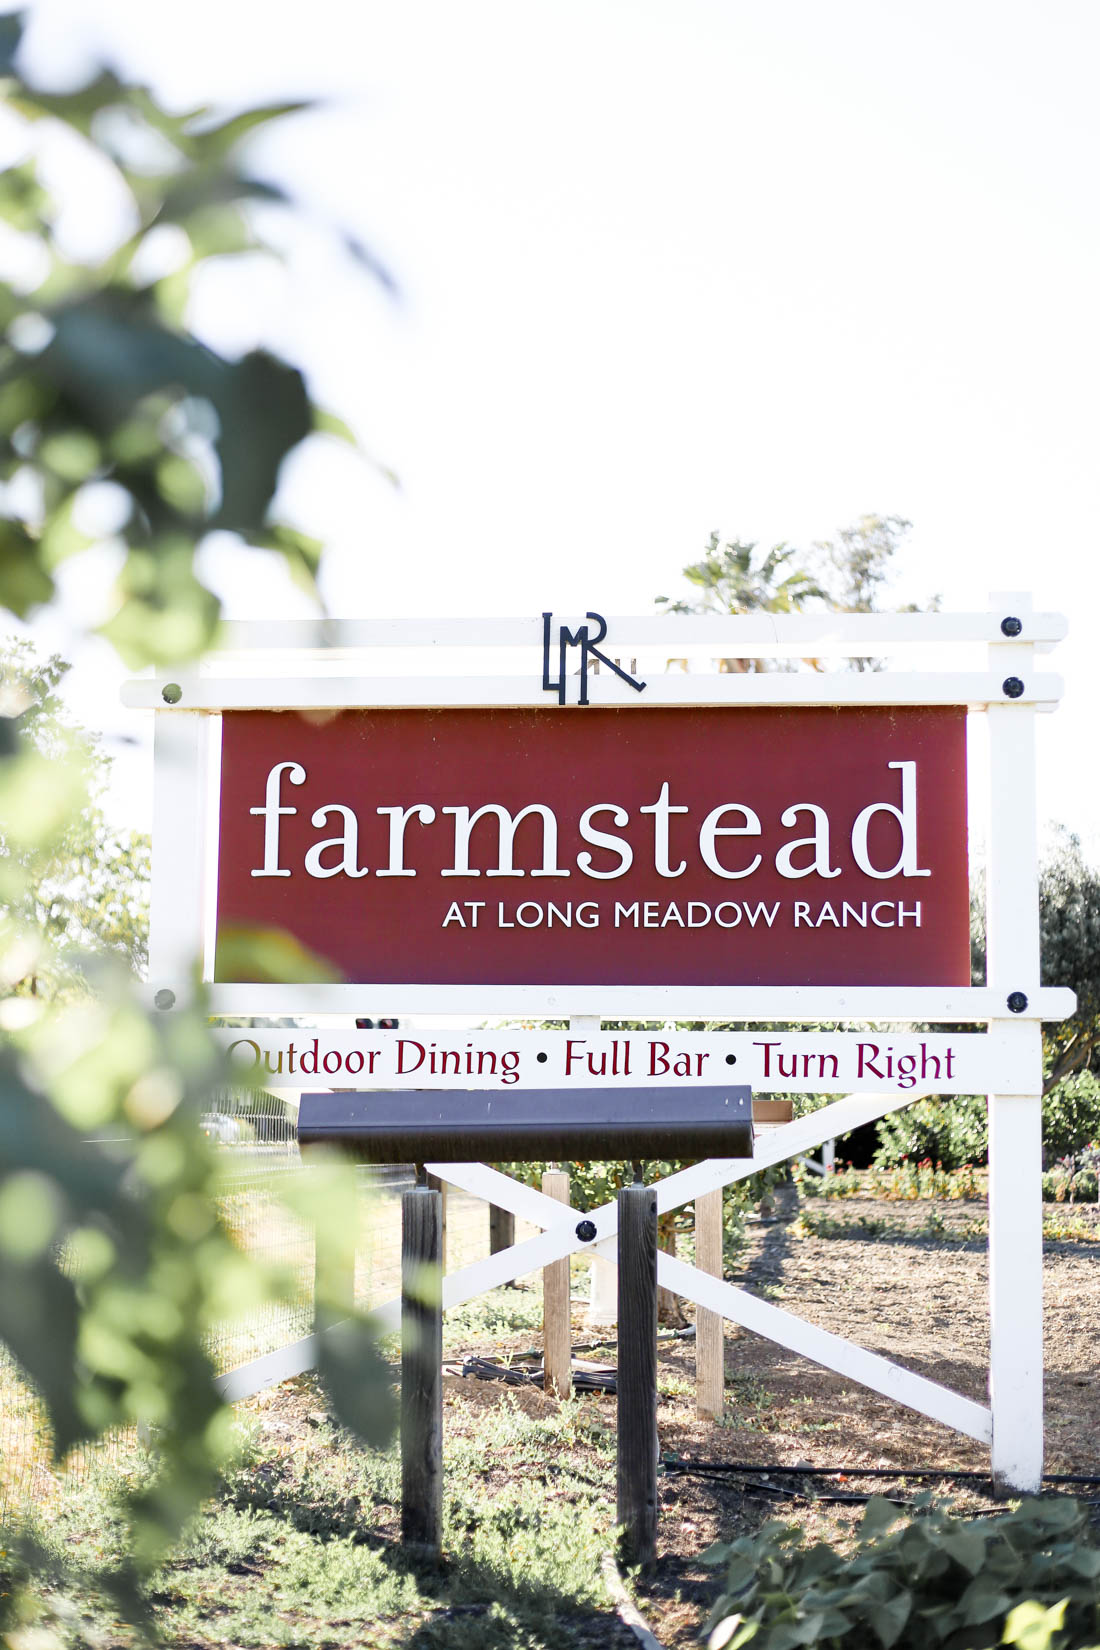 Napa Valley Travel Guide | Farmstead Long Meadow Ranch Restaurant | The Beauty Vanity